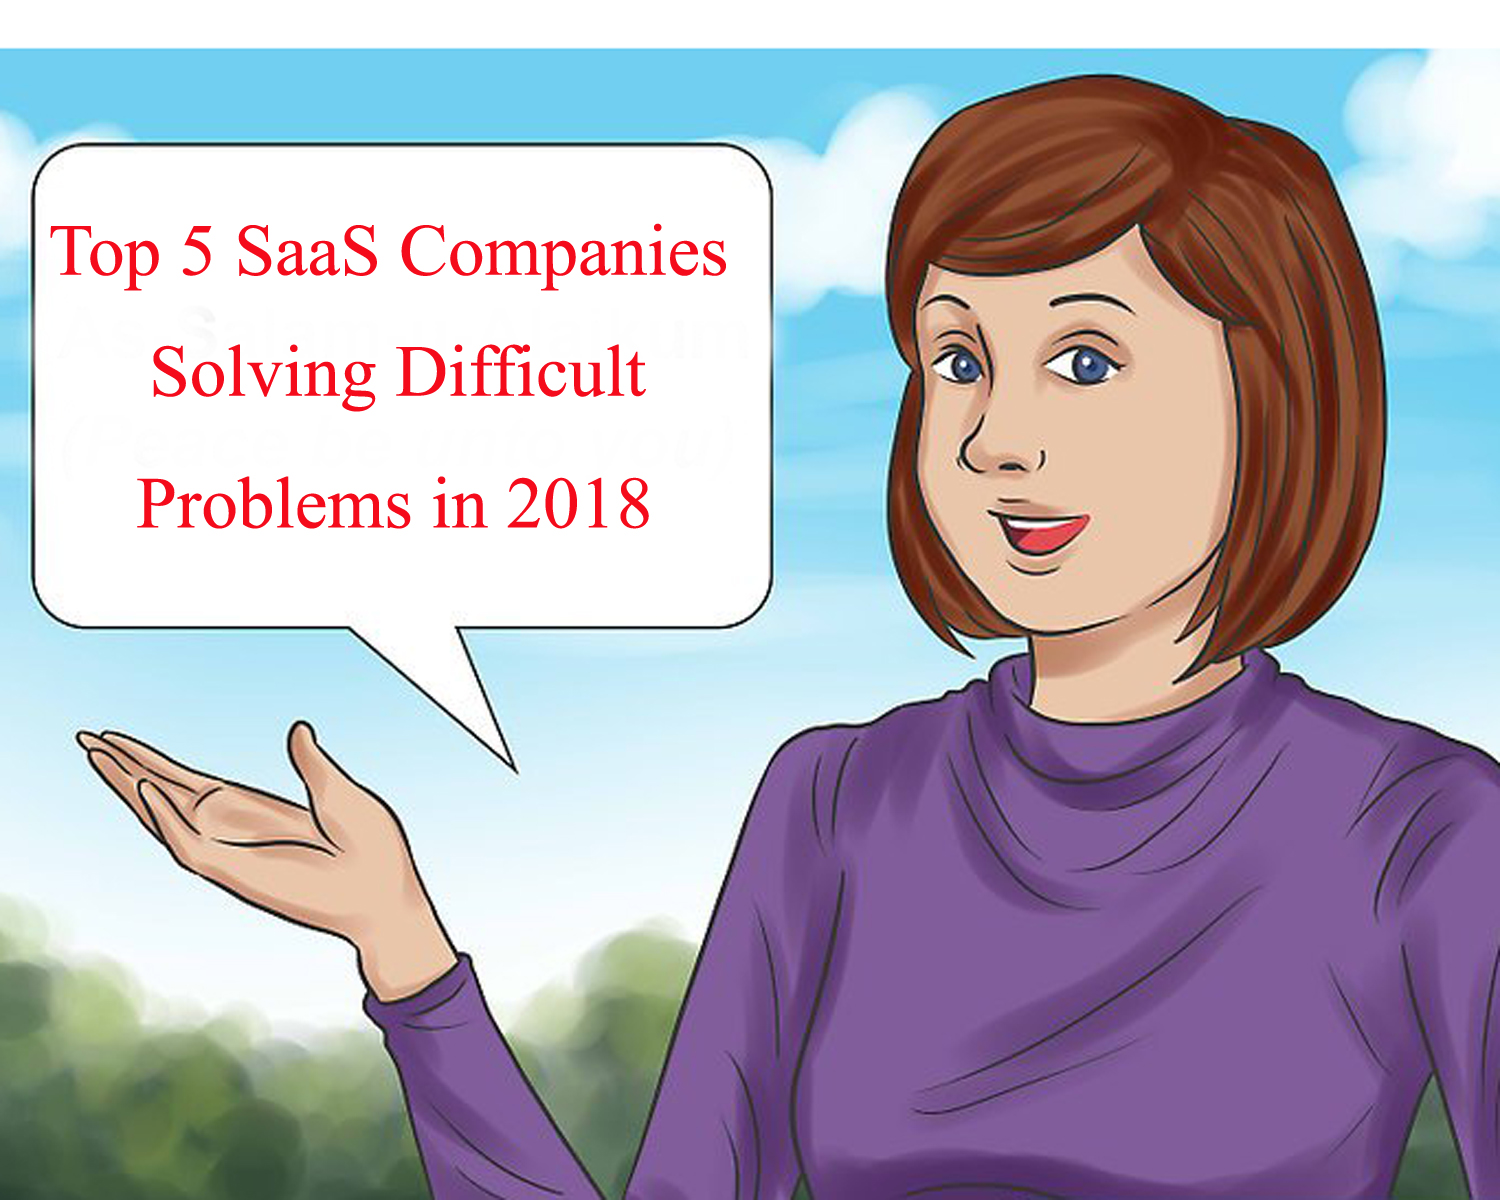 Top 5 SaaS Companies Solving Difficult Problems in 2018